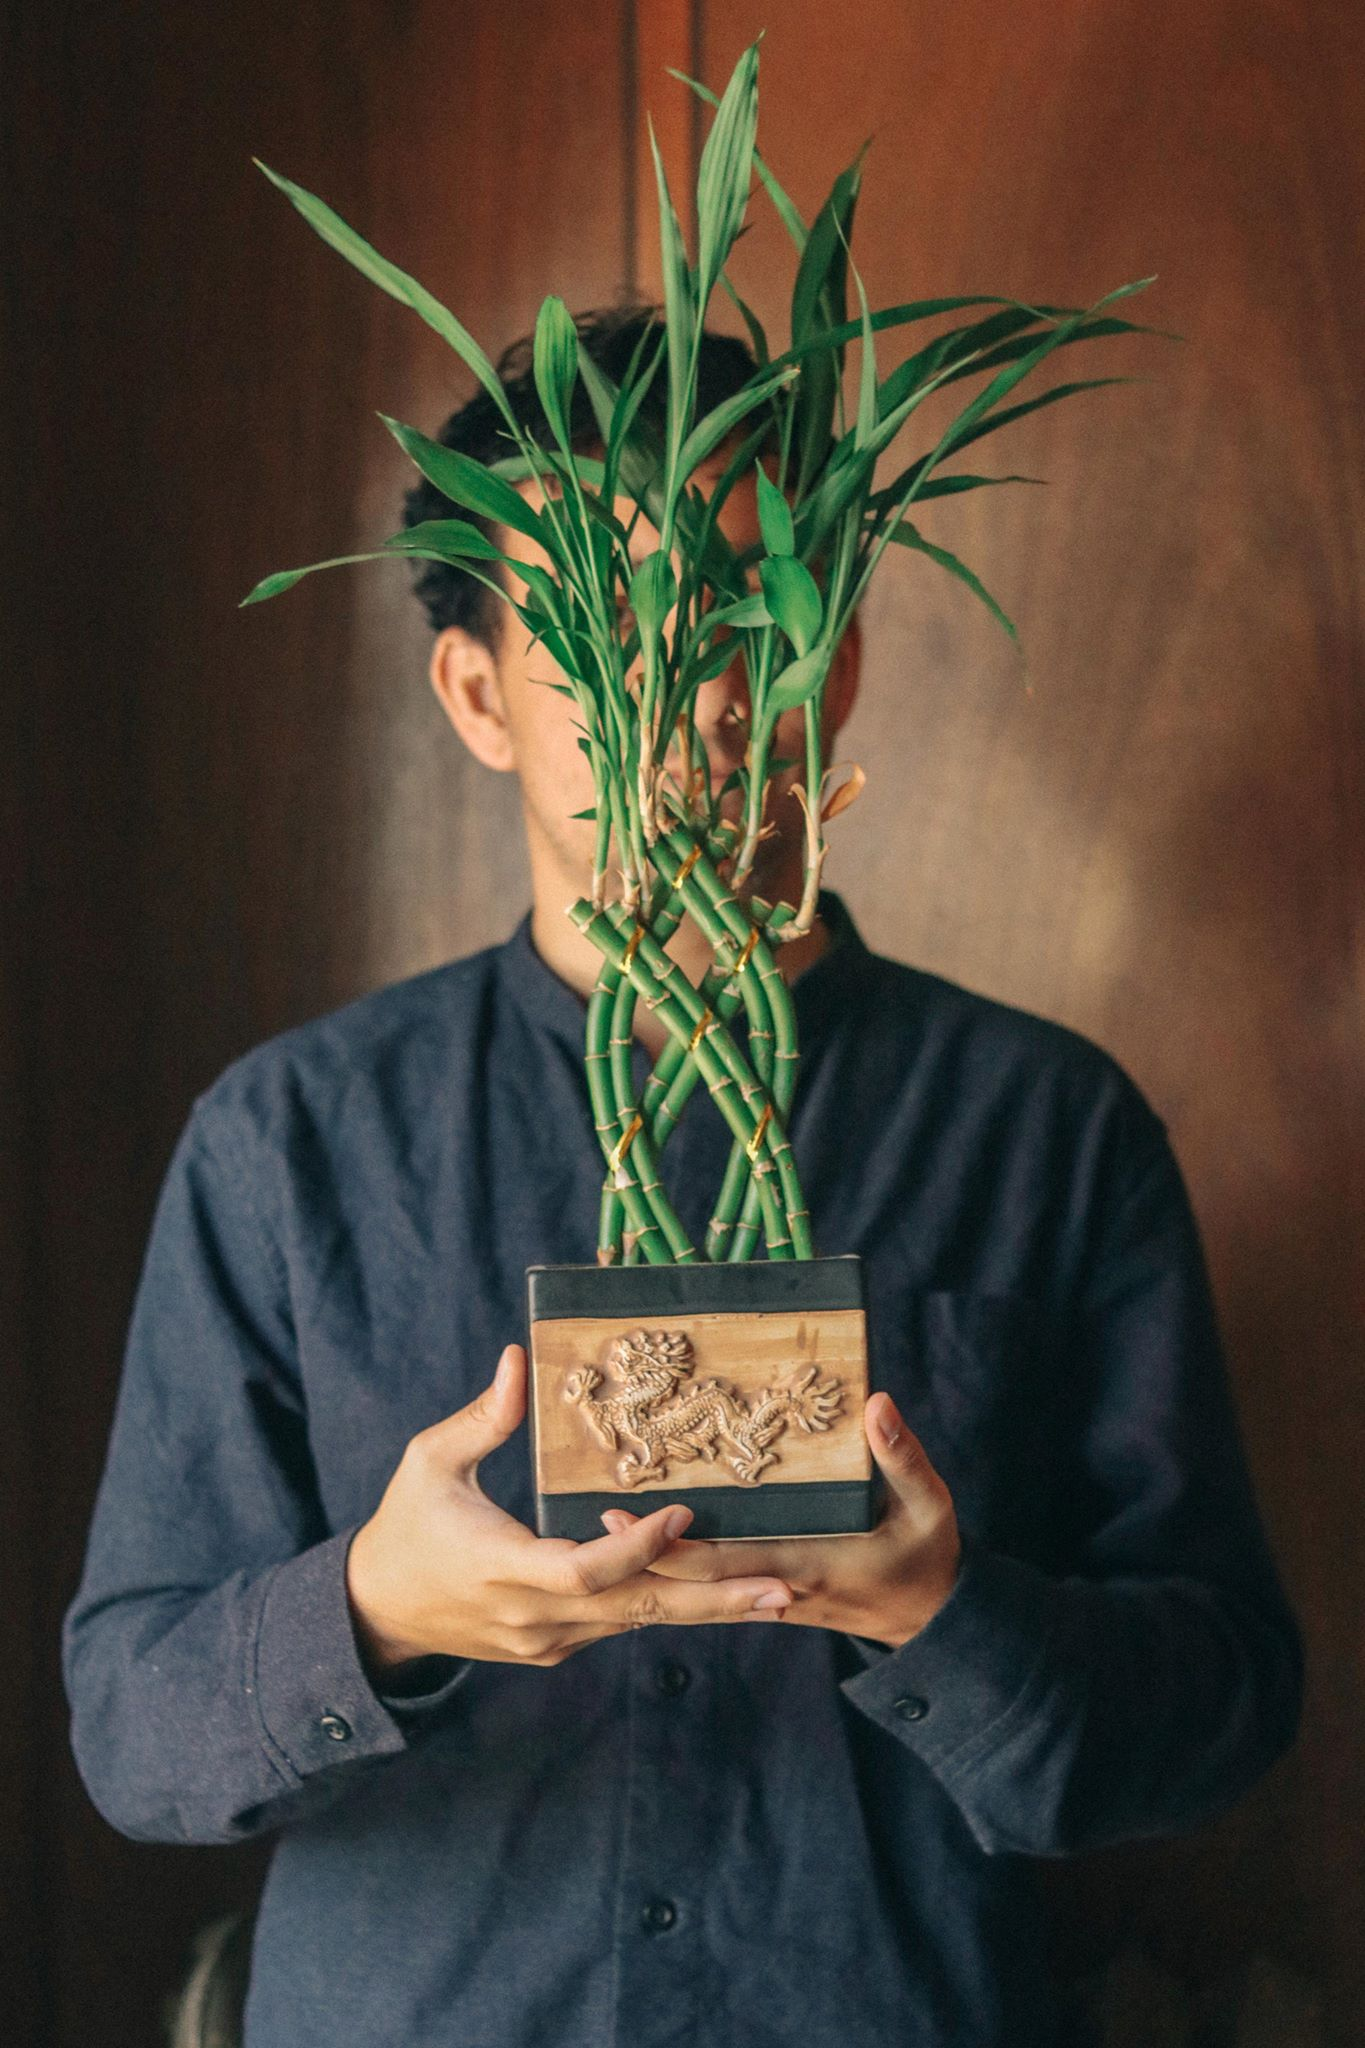 It's me and one of my plants